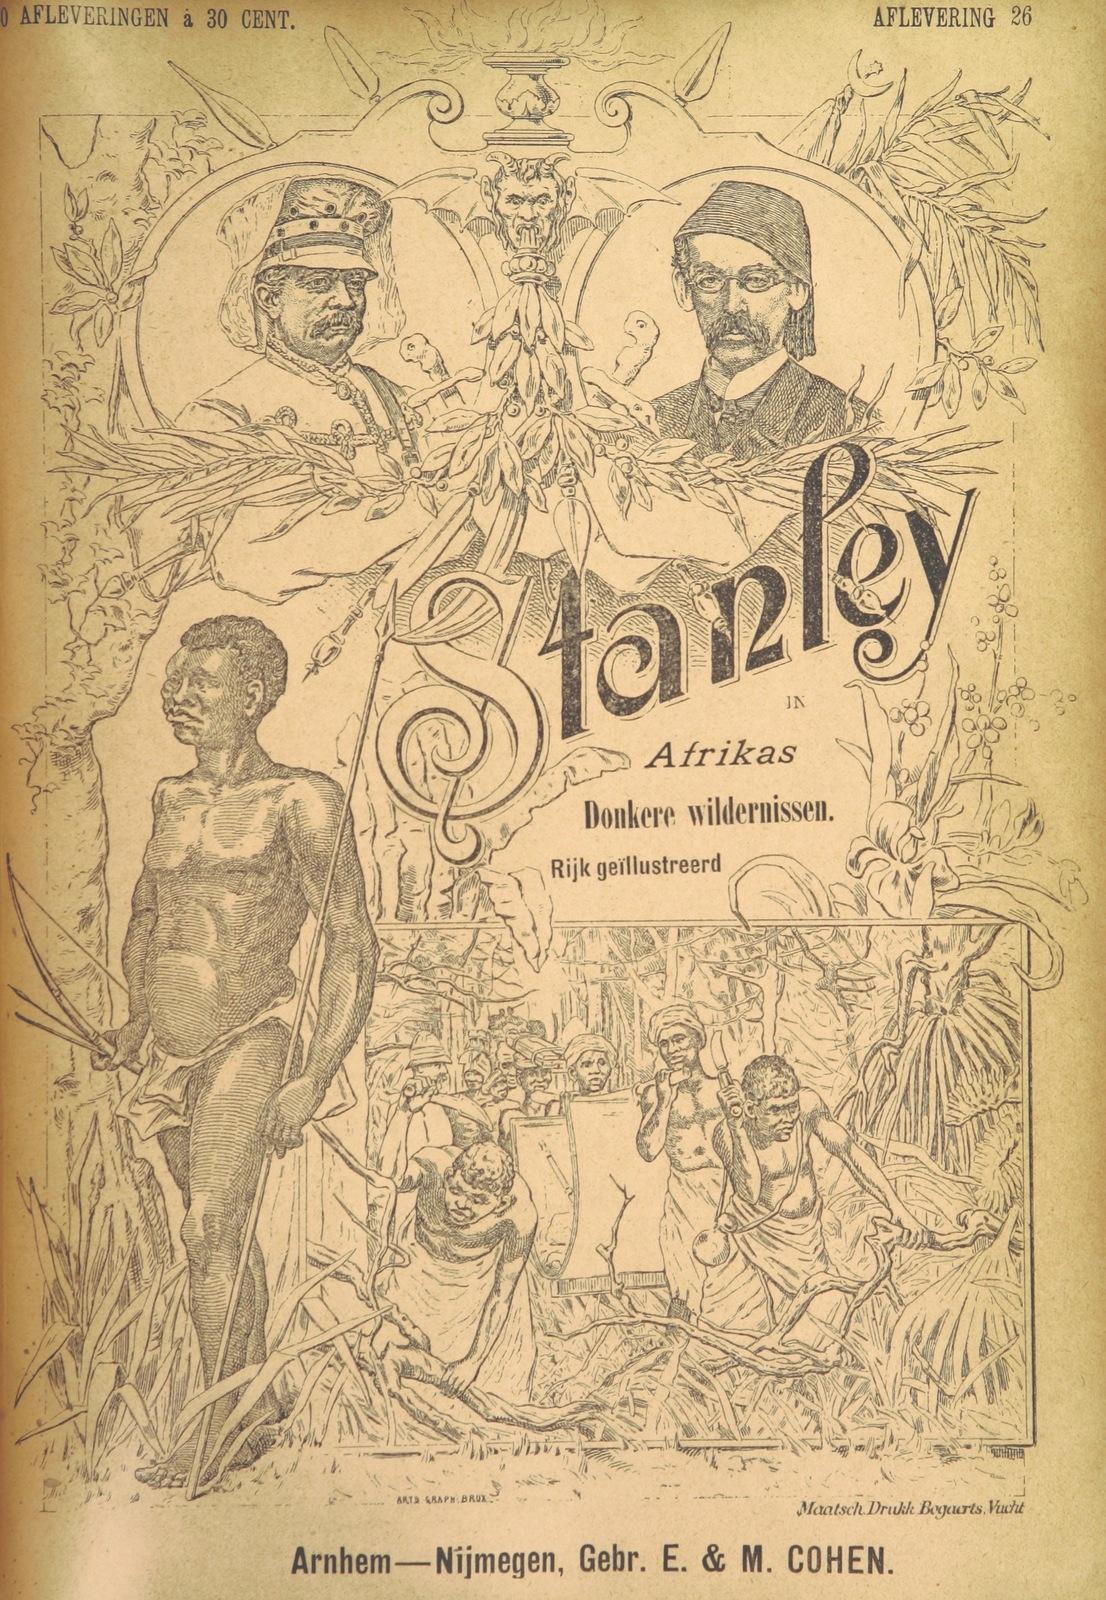 """cover from """"Stanley in Afrika's donkere wildernissen, etc. [Translated from """"In Darkest Afrika"""" by H. Tiedeman.]"""""""